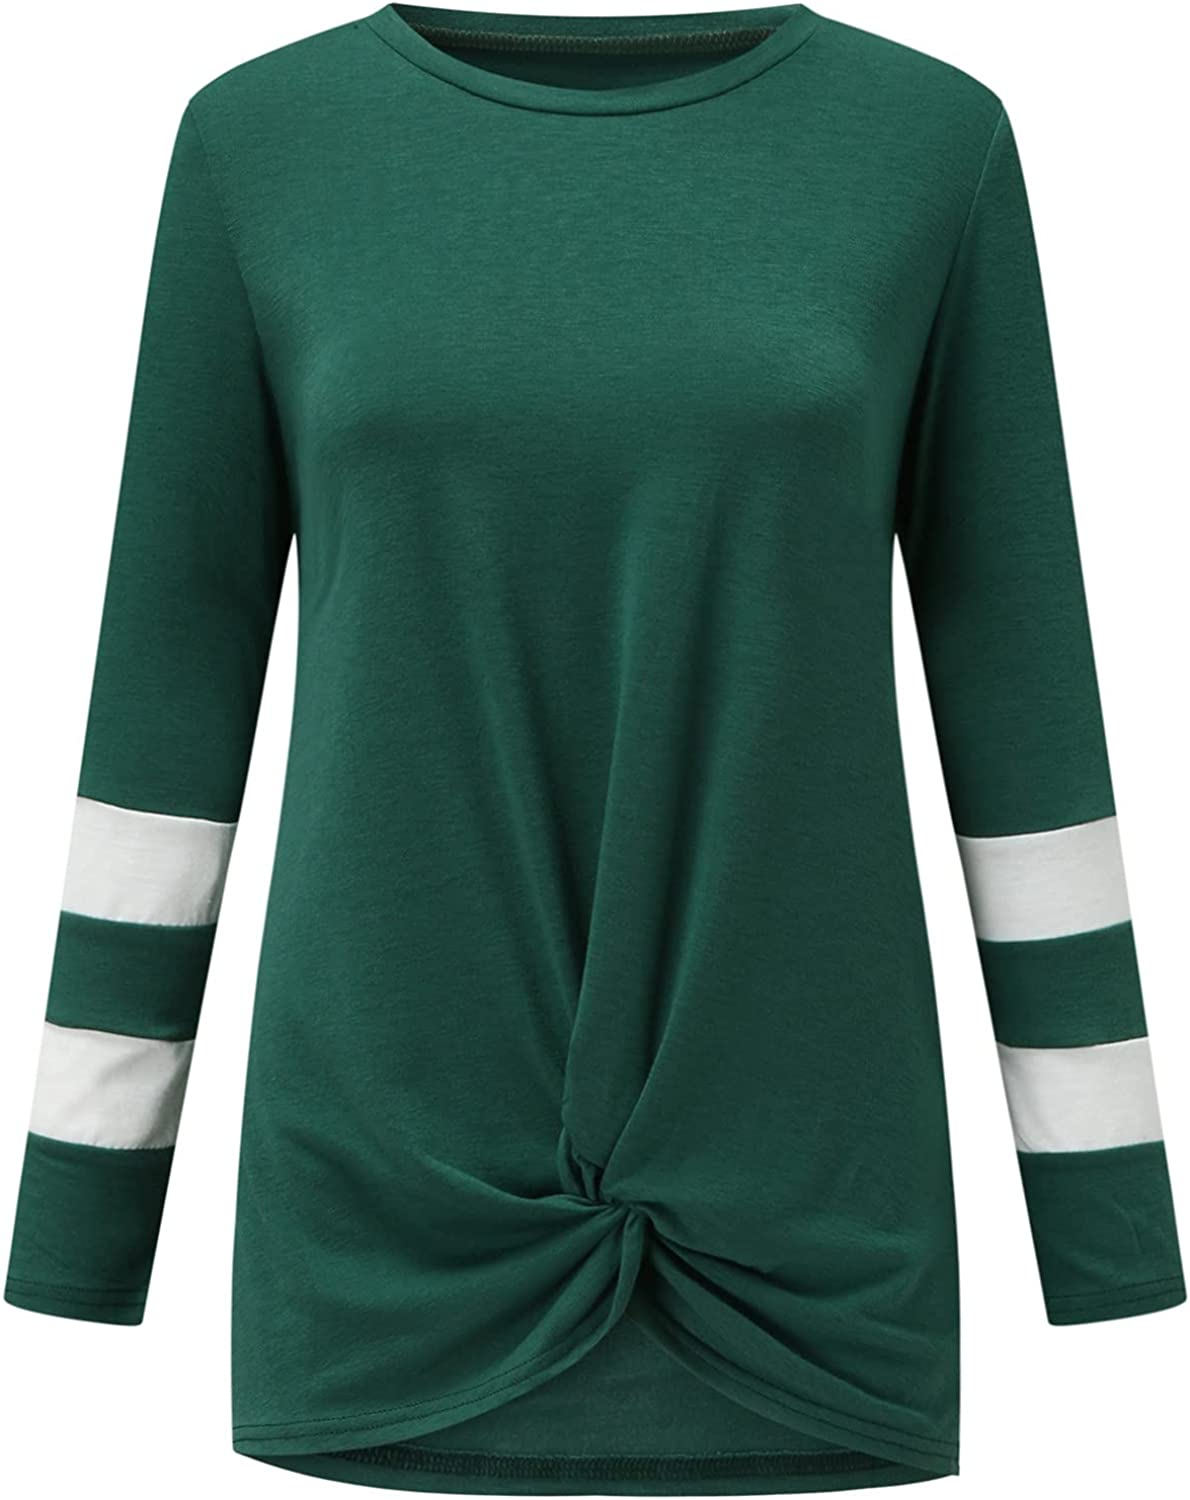 Pandaie Solid Color Max 56% OFF Long Sleeve Tops V Women Stripe Splicing for Cheap sale